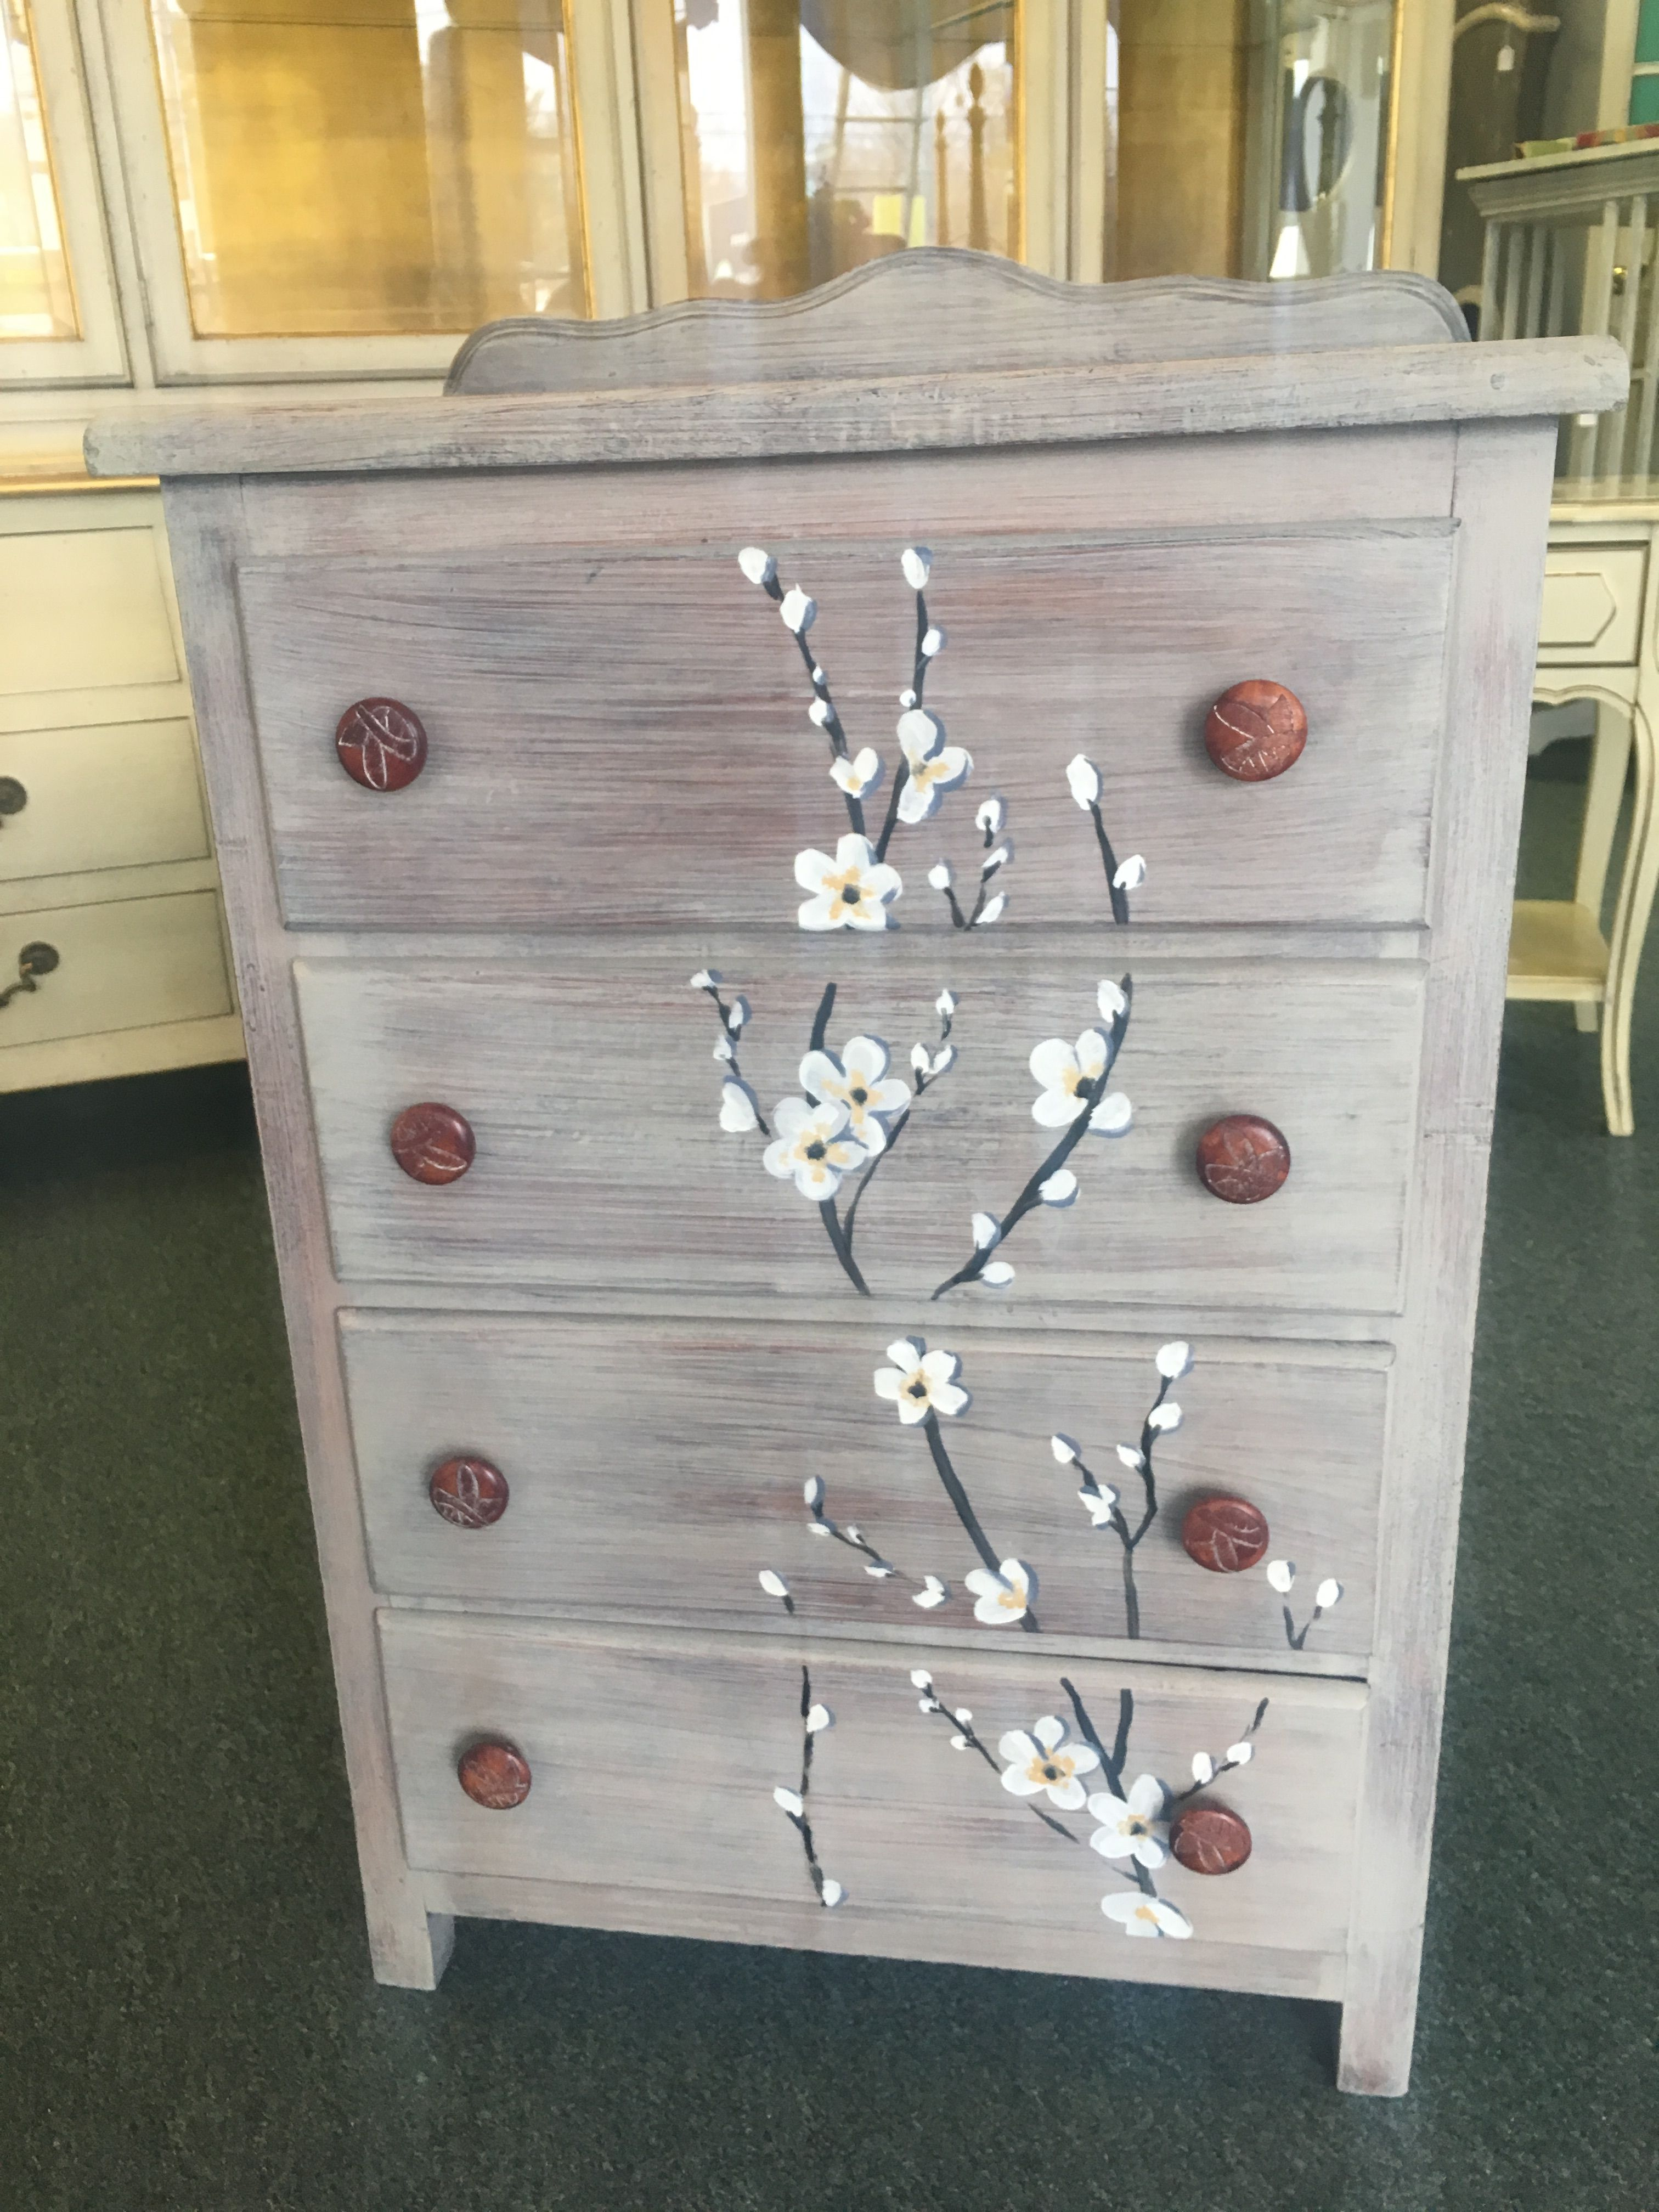 Simple Small Dresser Painted With Chalk Paint Coco Hand Painted Flowers Small Dresser Chalk Paint Hand Painted Flowers